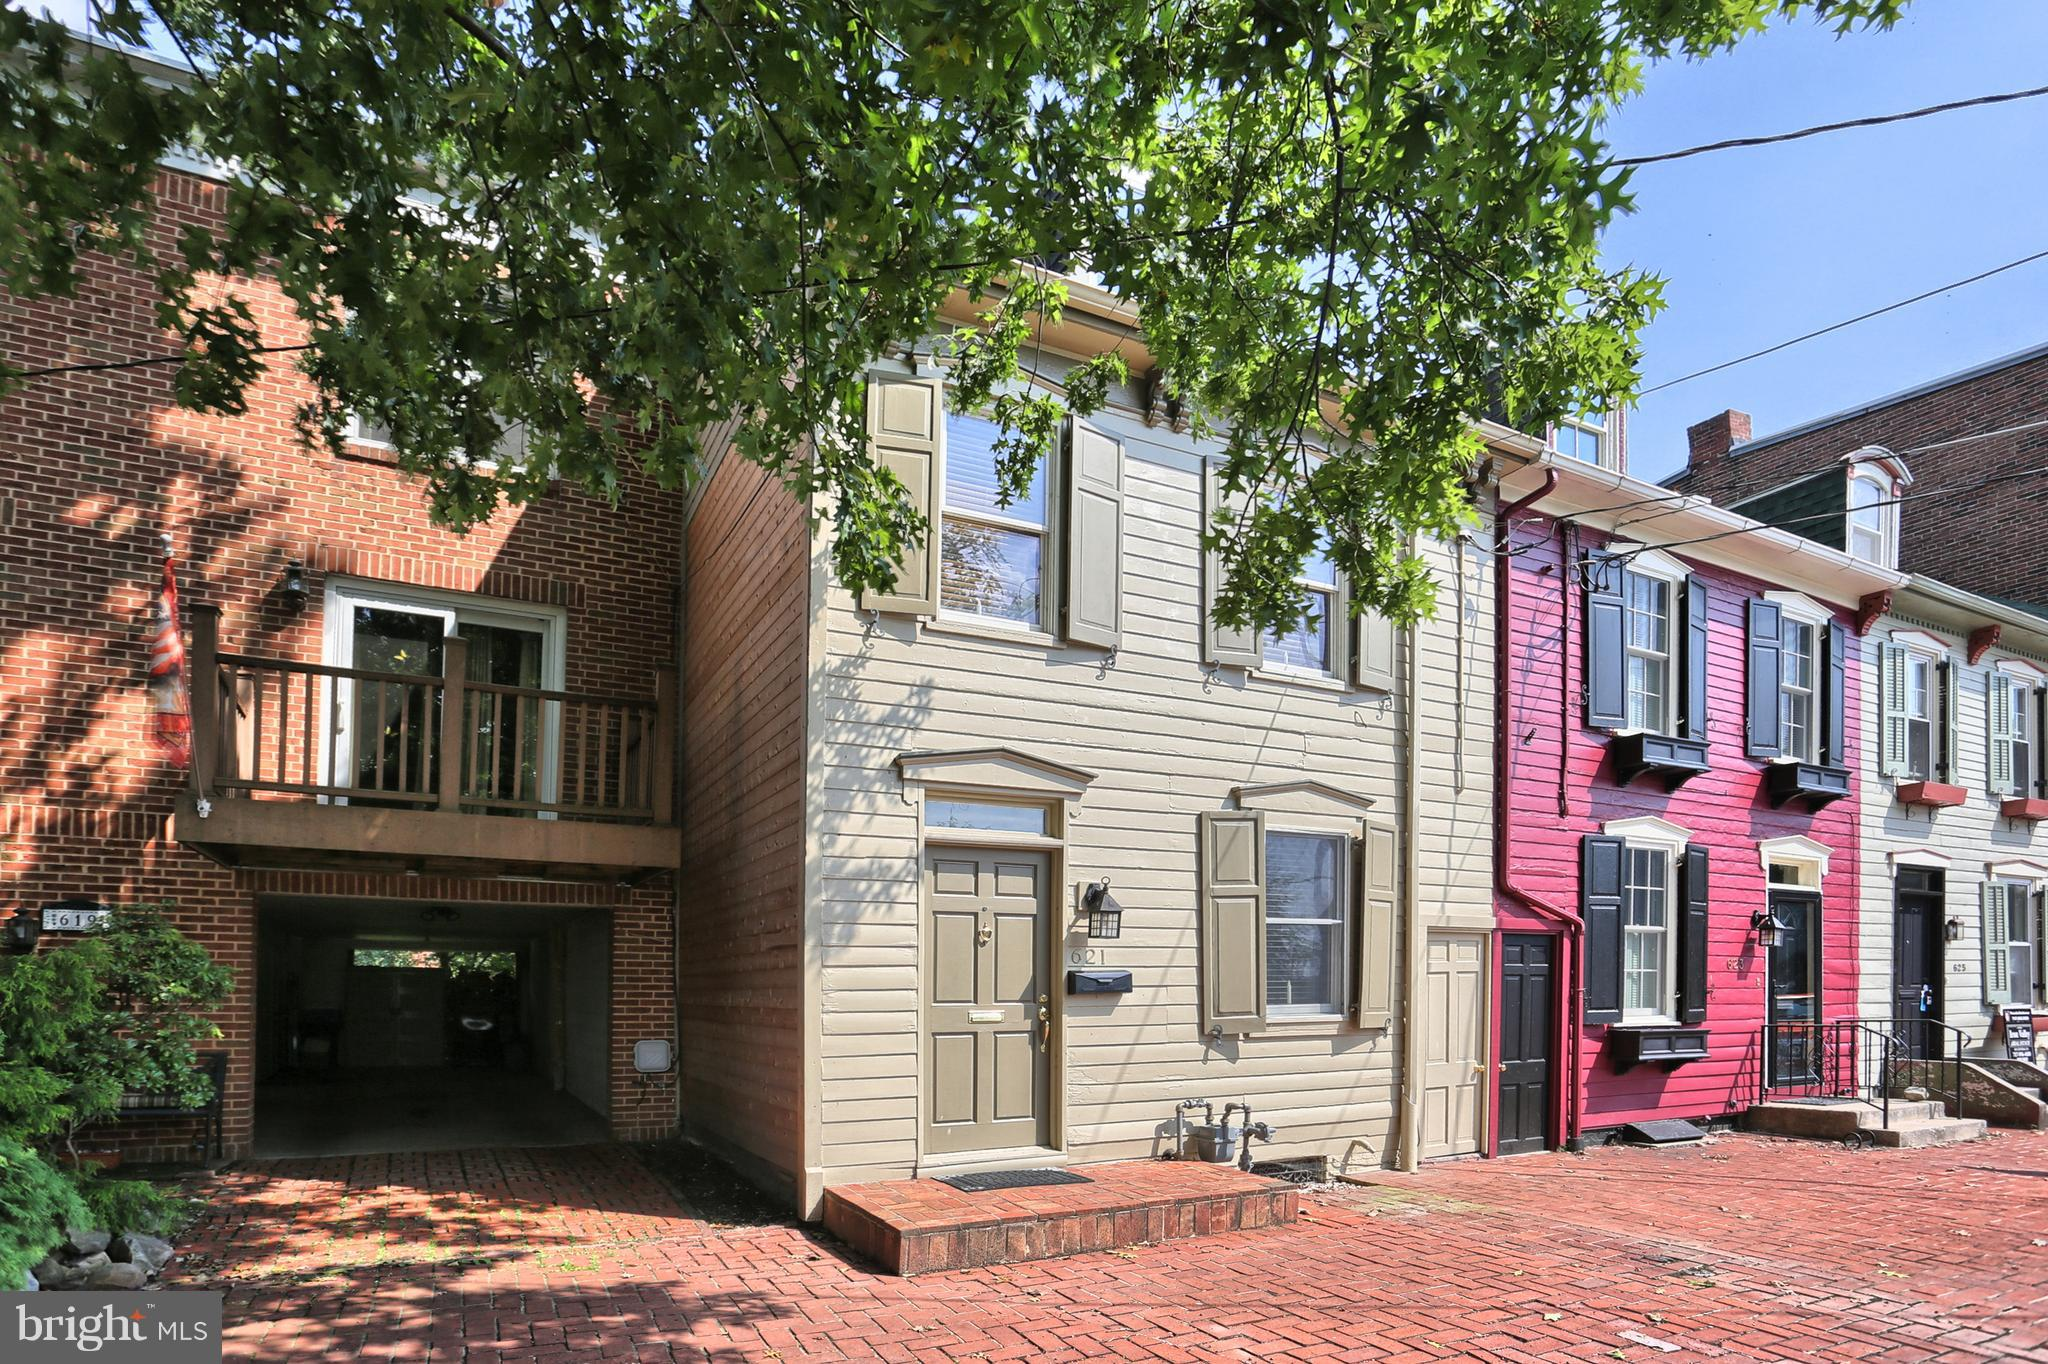 621 S FRONT STREET, HARRISBURG, PA 17104